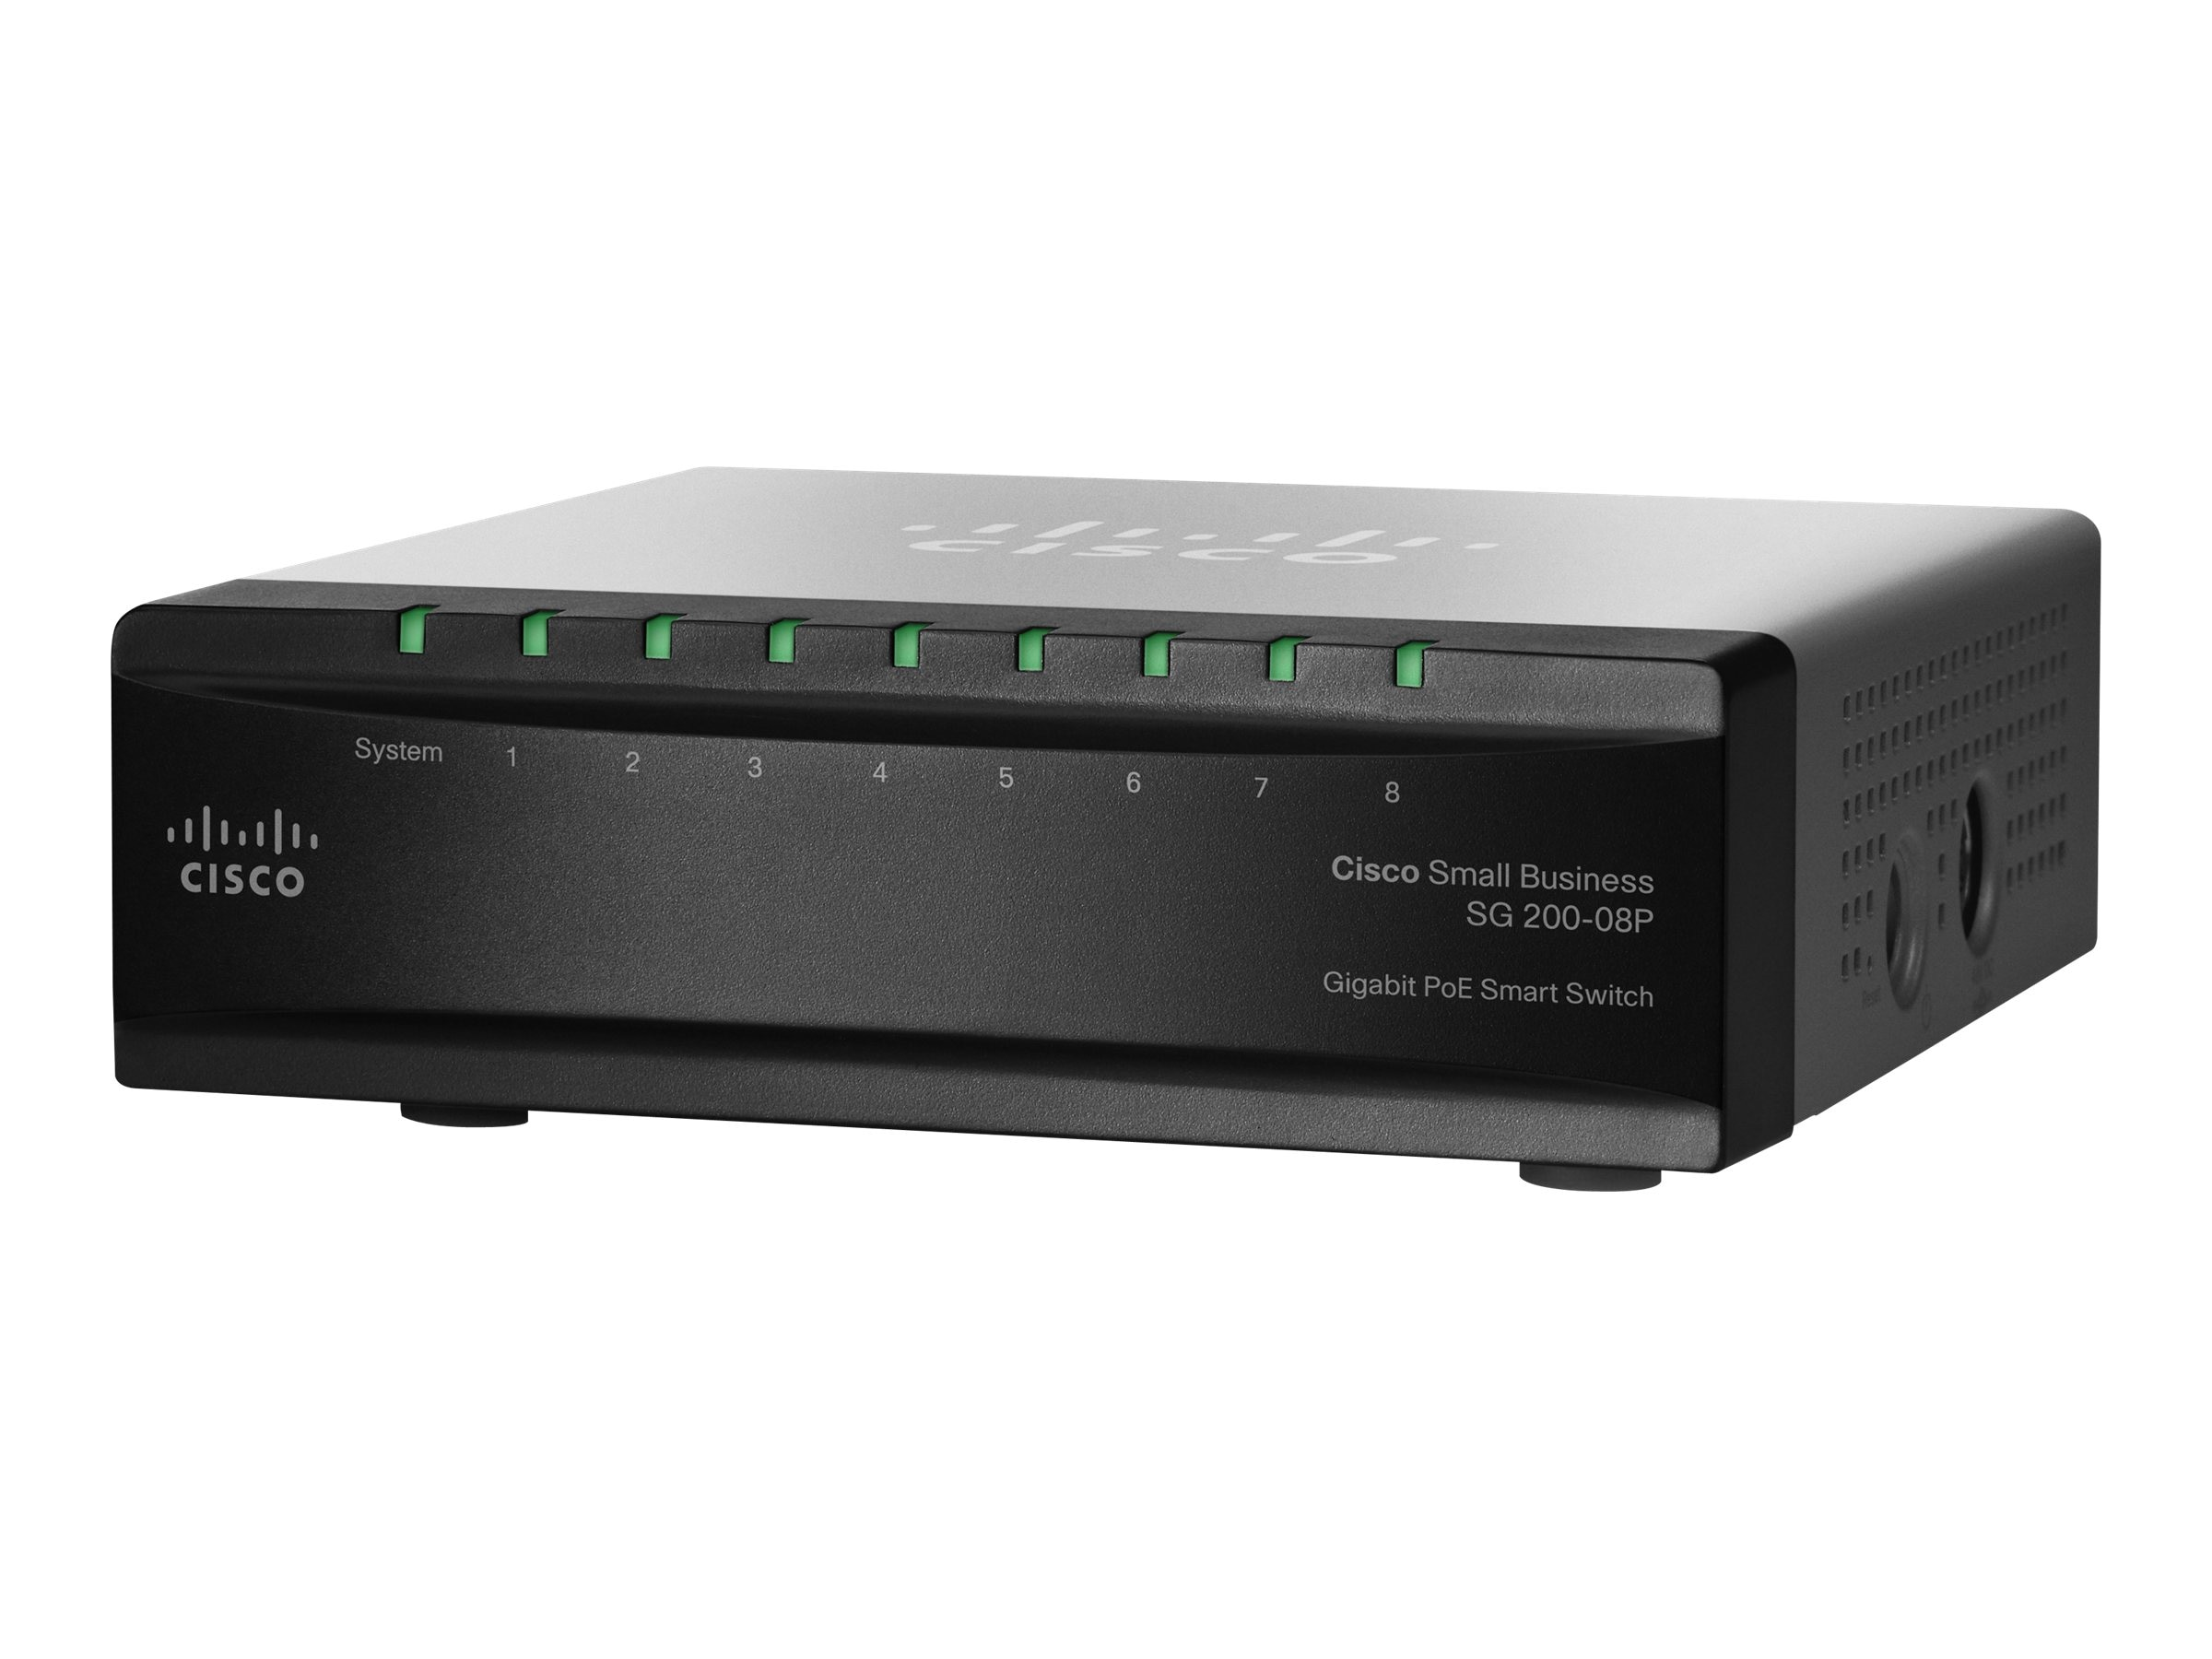 Cisco SG200-08P 8-Port Gigabit PoE Smart Switch (UK)